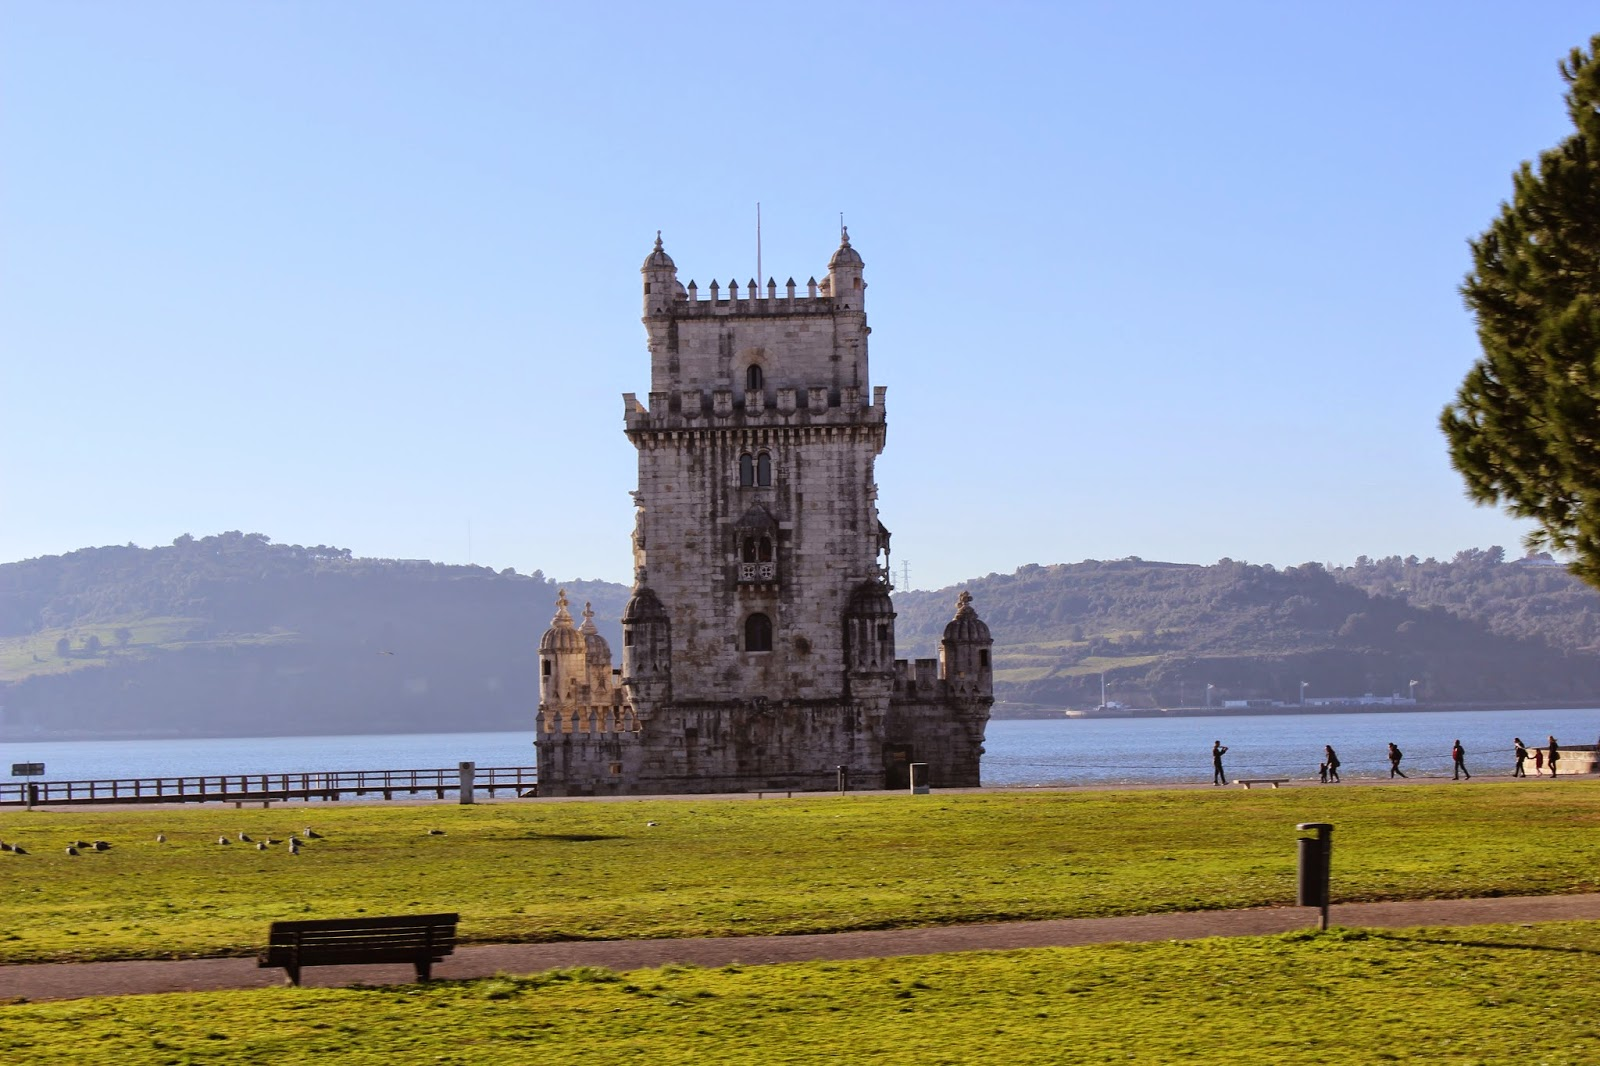 http://www.saucemagnusson.com/2015/02/the-belem-tower-and-monument-of.html